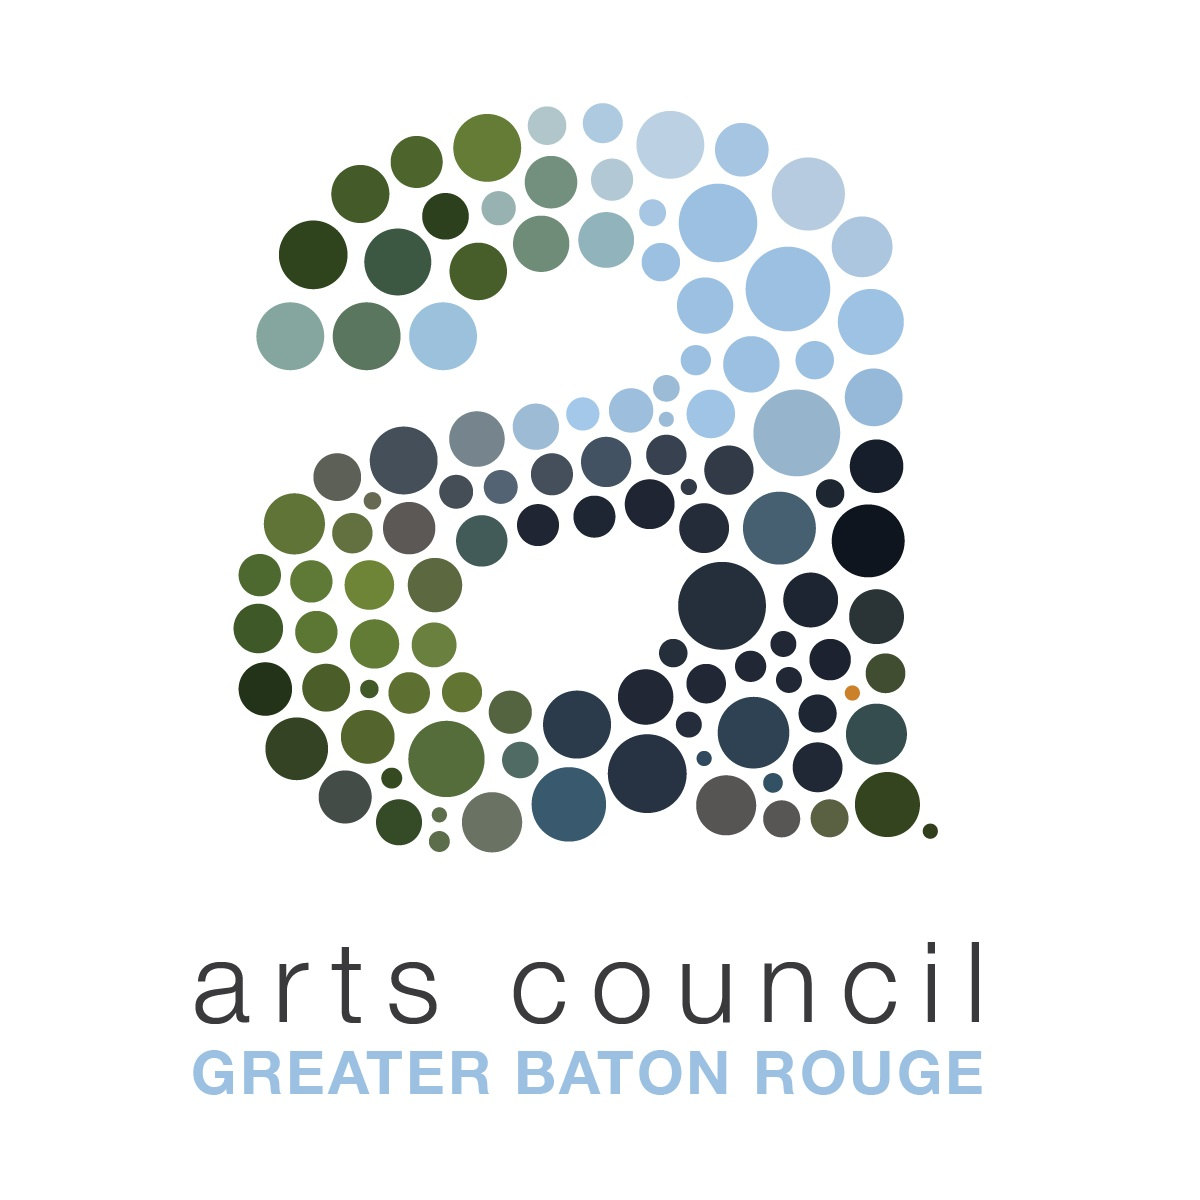 Arts Council Logos-24 - Copy.jpg